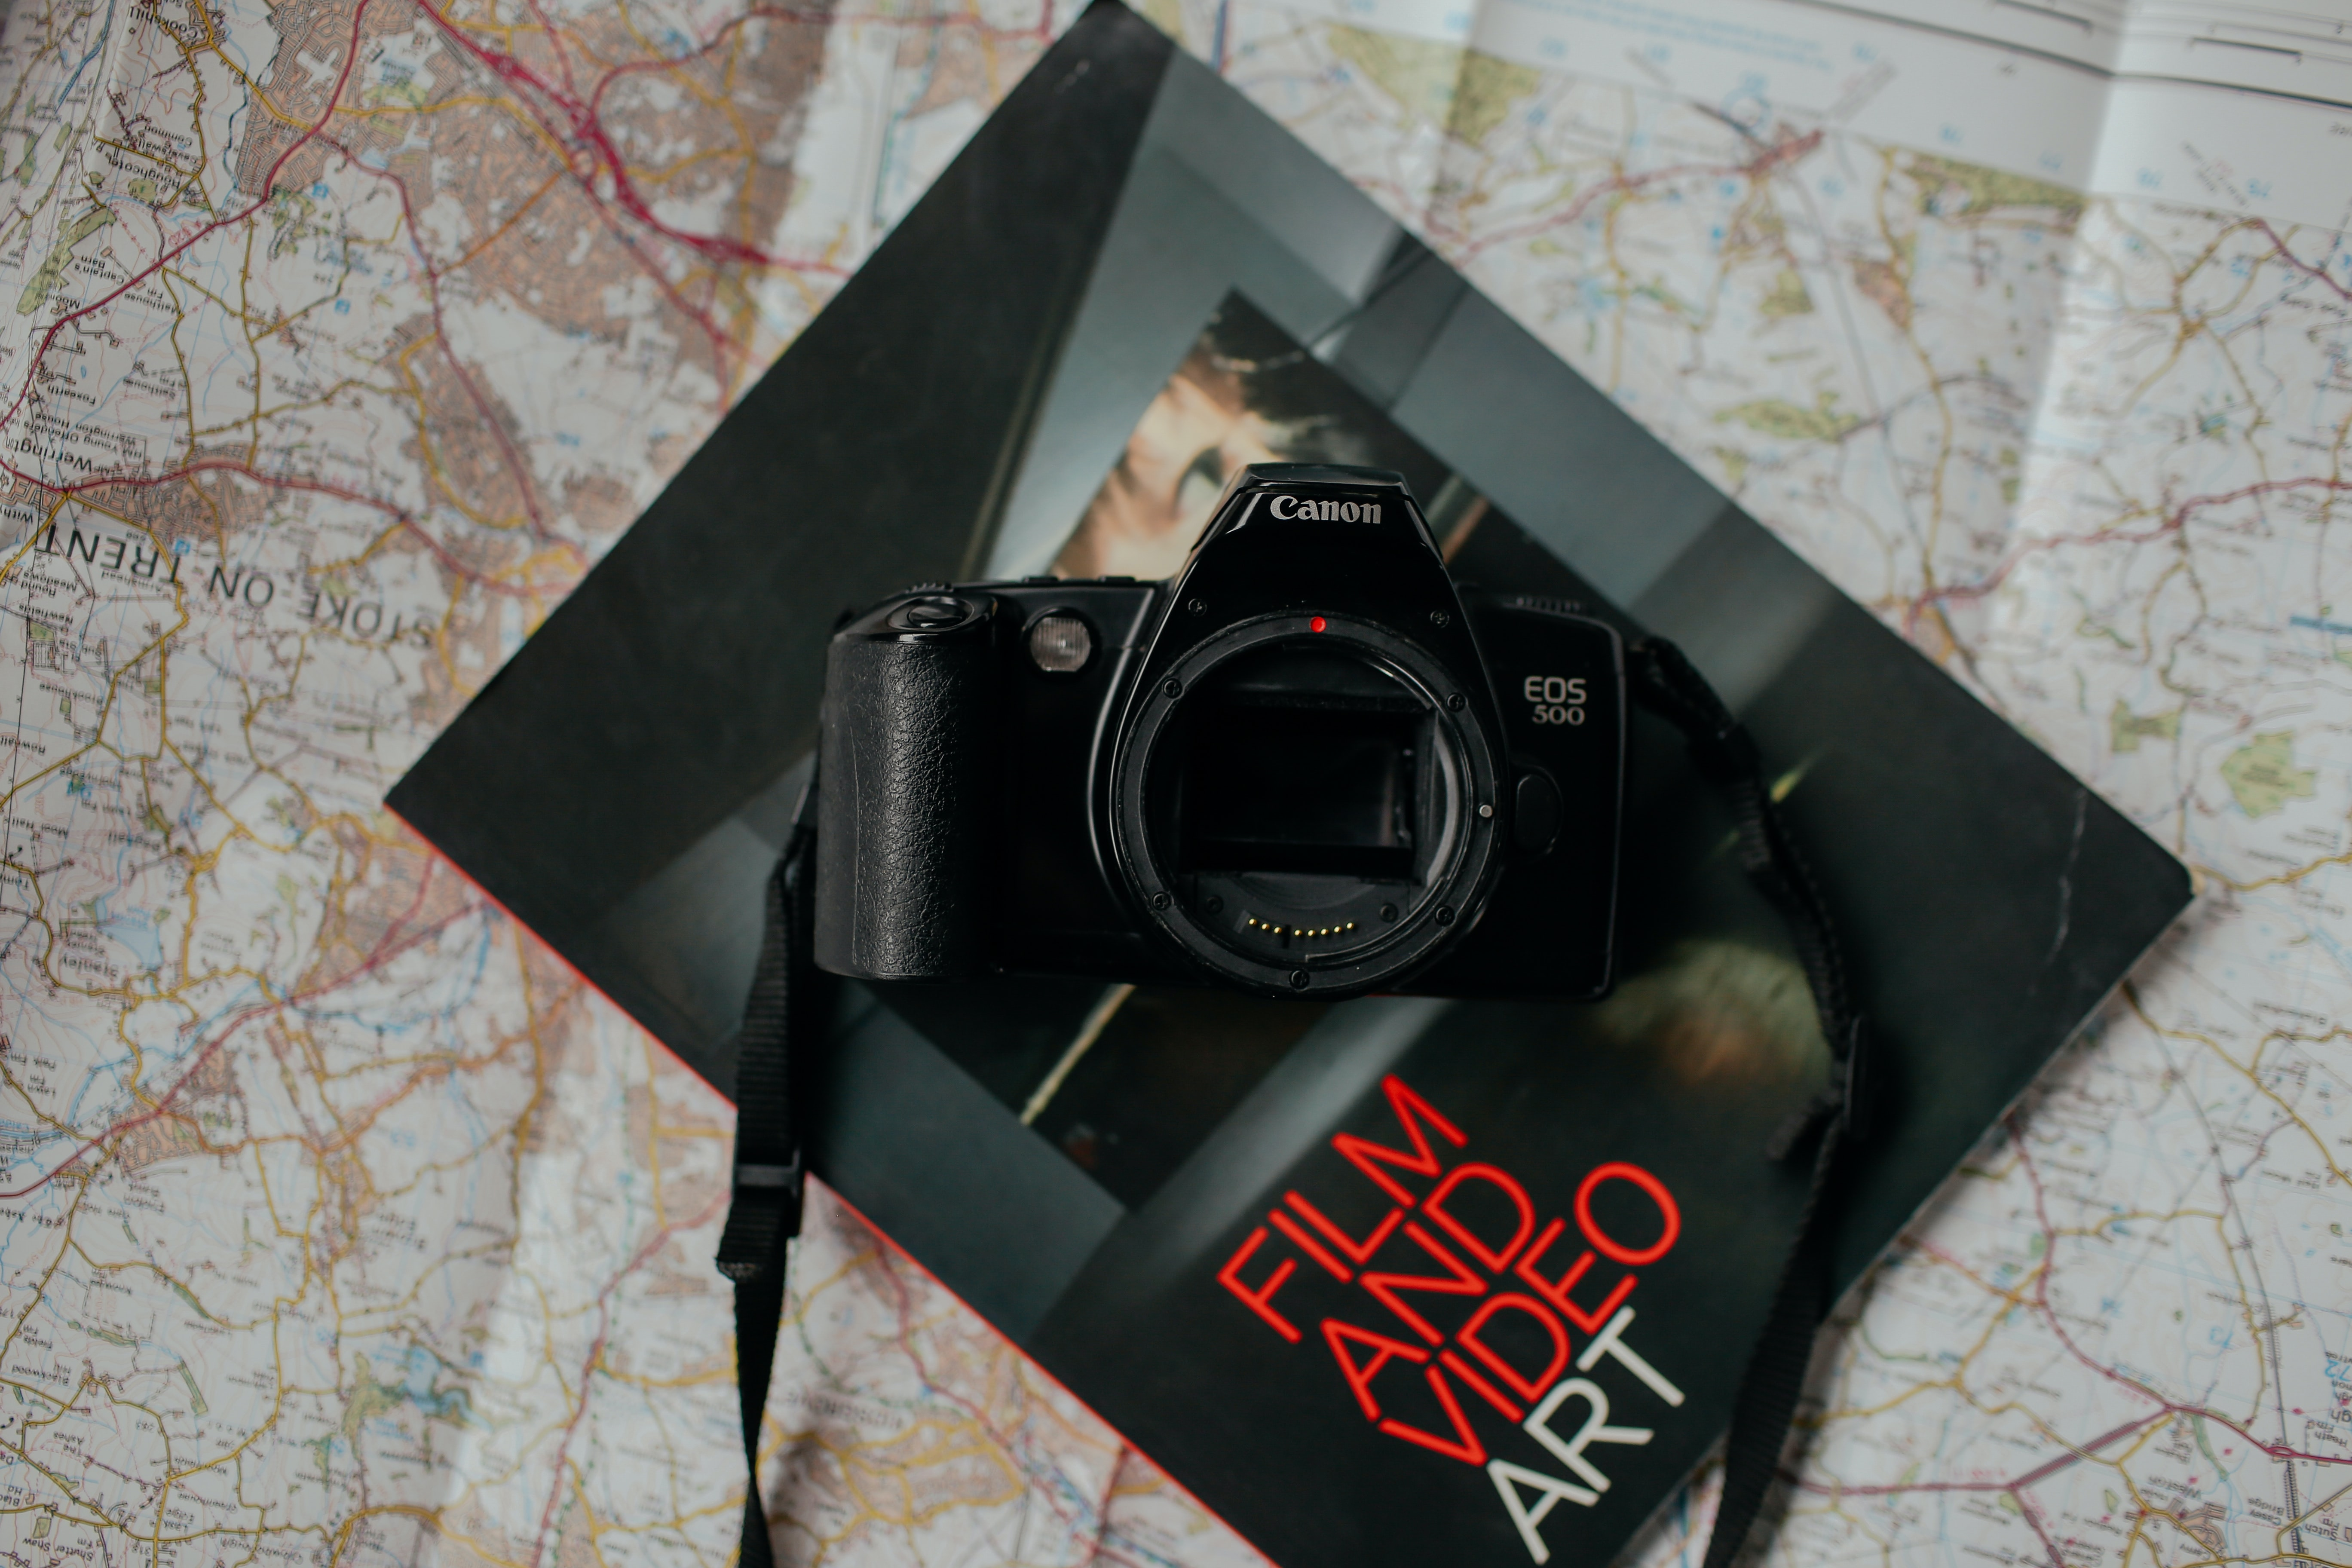 Canon EOS 500 camera without a lens on a Film and Video Art magazine on top of a map of Stoke on Trent